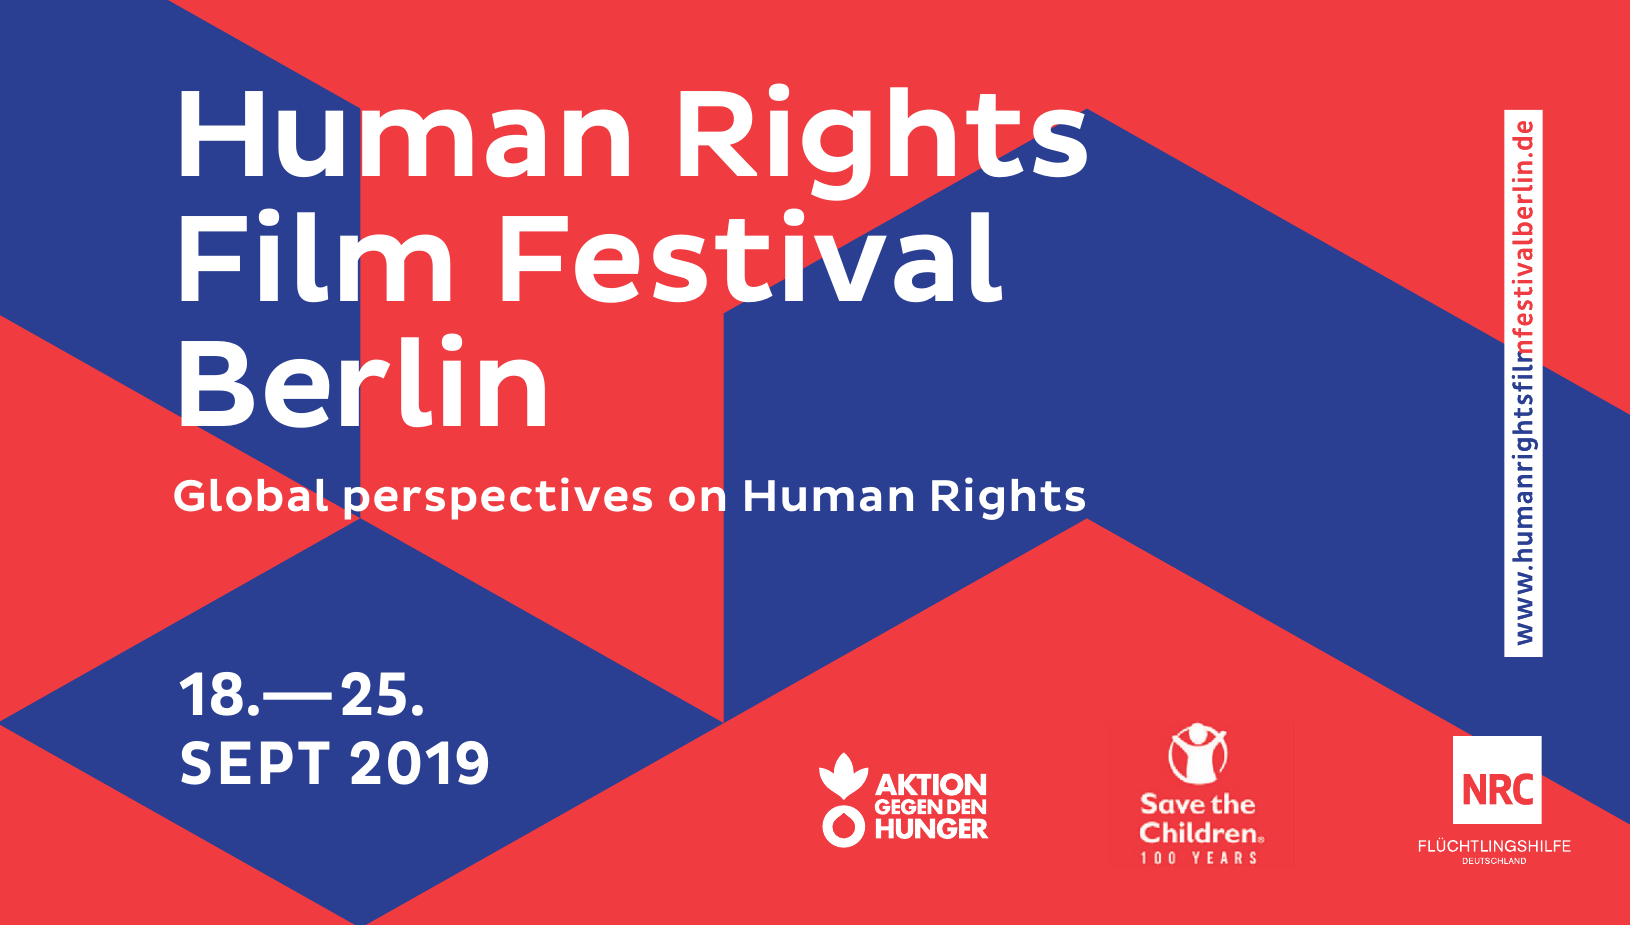 Human Rights Film Festival Berlin